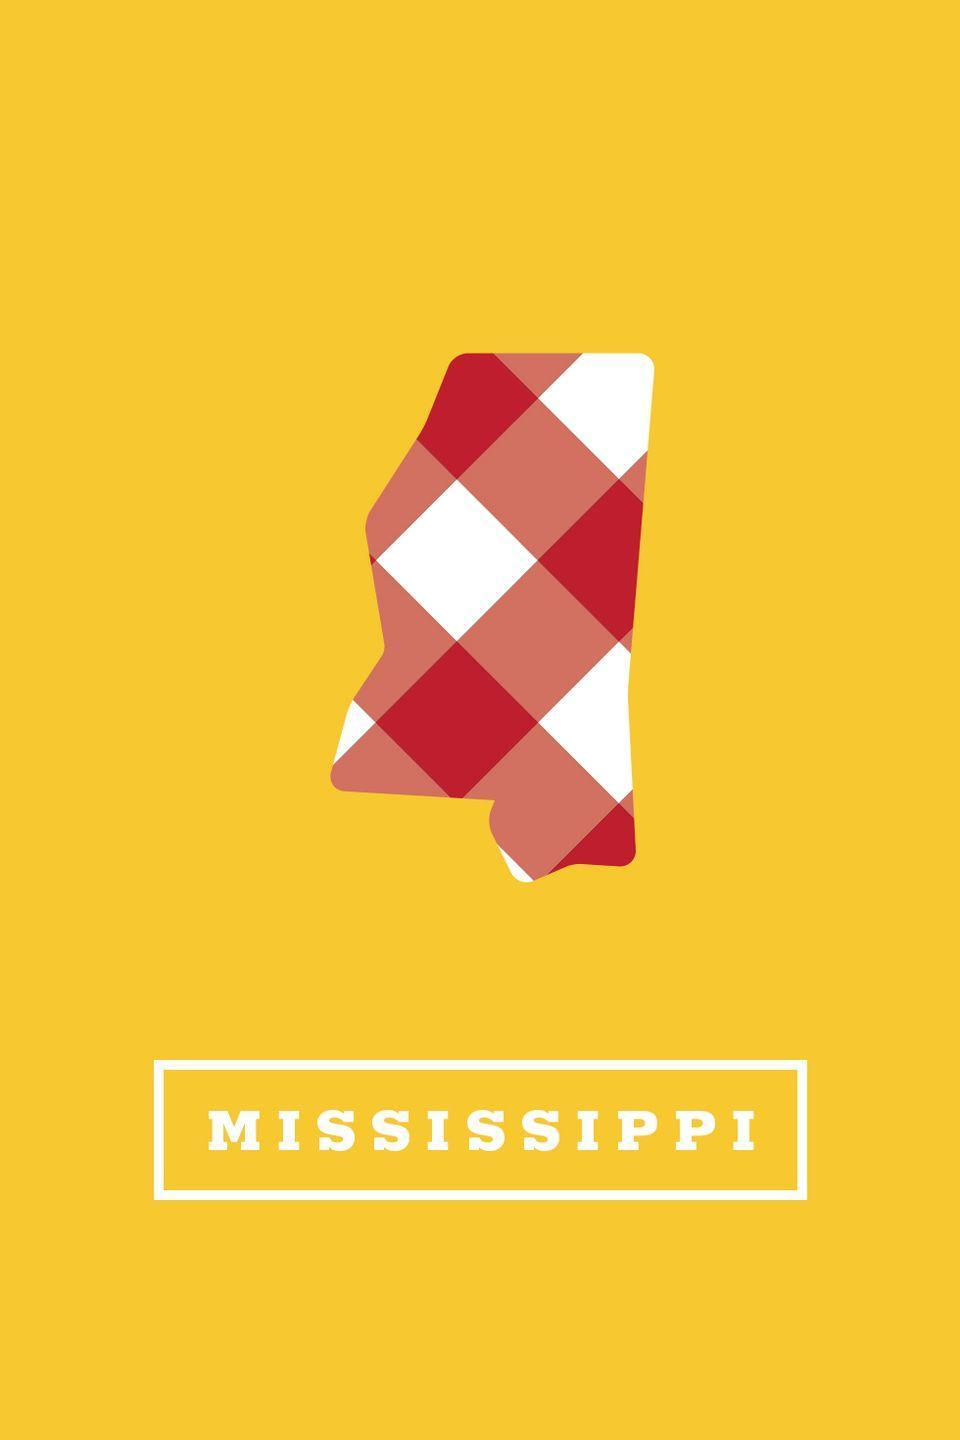 """<p>•You have to pick a side: Ole Miss or State.</p><p>•You know <a href=""""http://www.deepsouthdish.com/2009/08/comeback-sauce.html"""" rel=""""nofollow noopener"""" target=""""_blank"""" data-ylk=""""slk:comeback sauce"""" class=""""link rapid-noclick-resp"""">comeback sauce</a> is for lettuce (or anything fried).</p><p>•You prefer your peanuts boiled.</p>"""